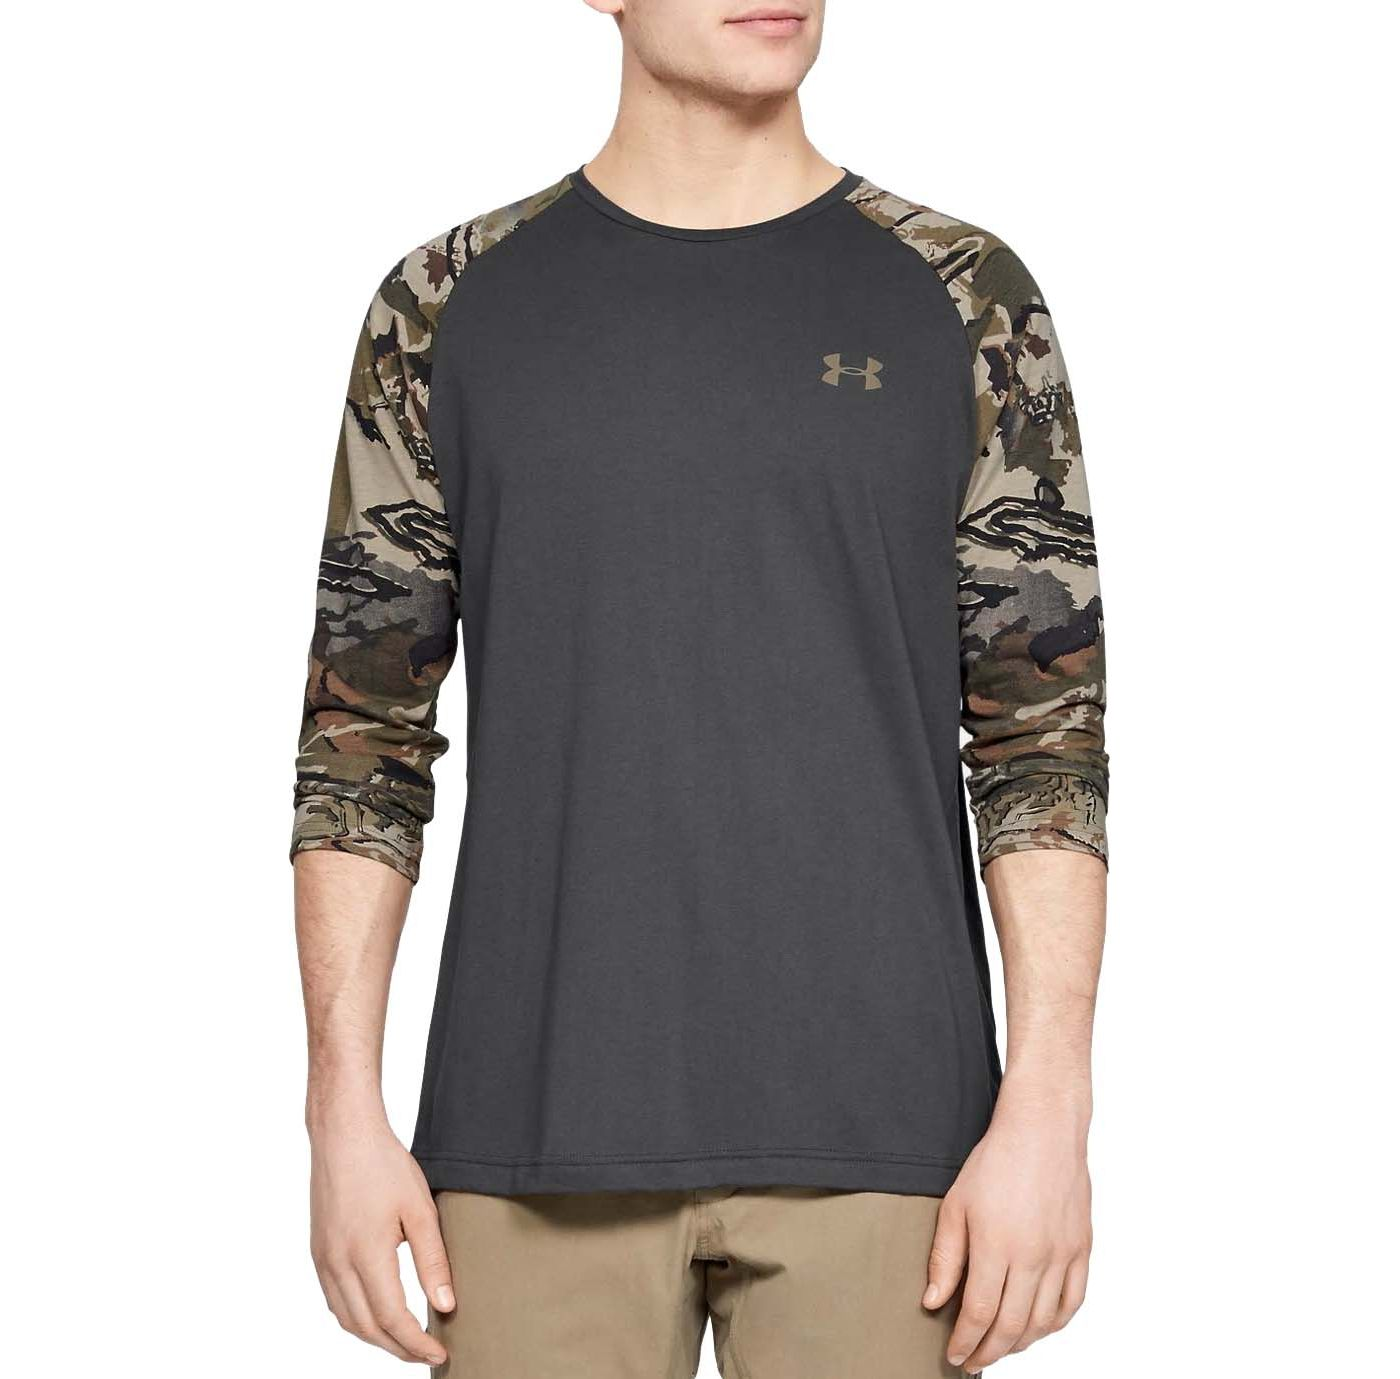 UA Men's Camo Sleeve Utility T-Shirt